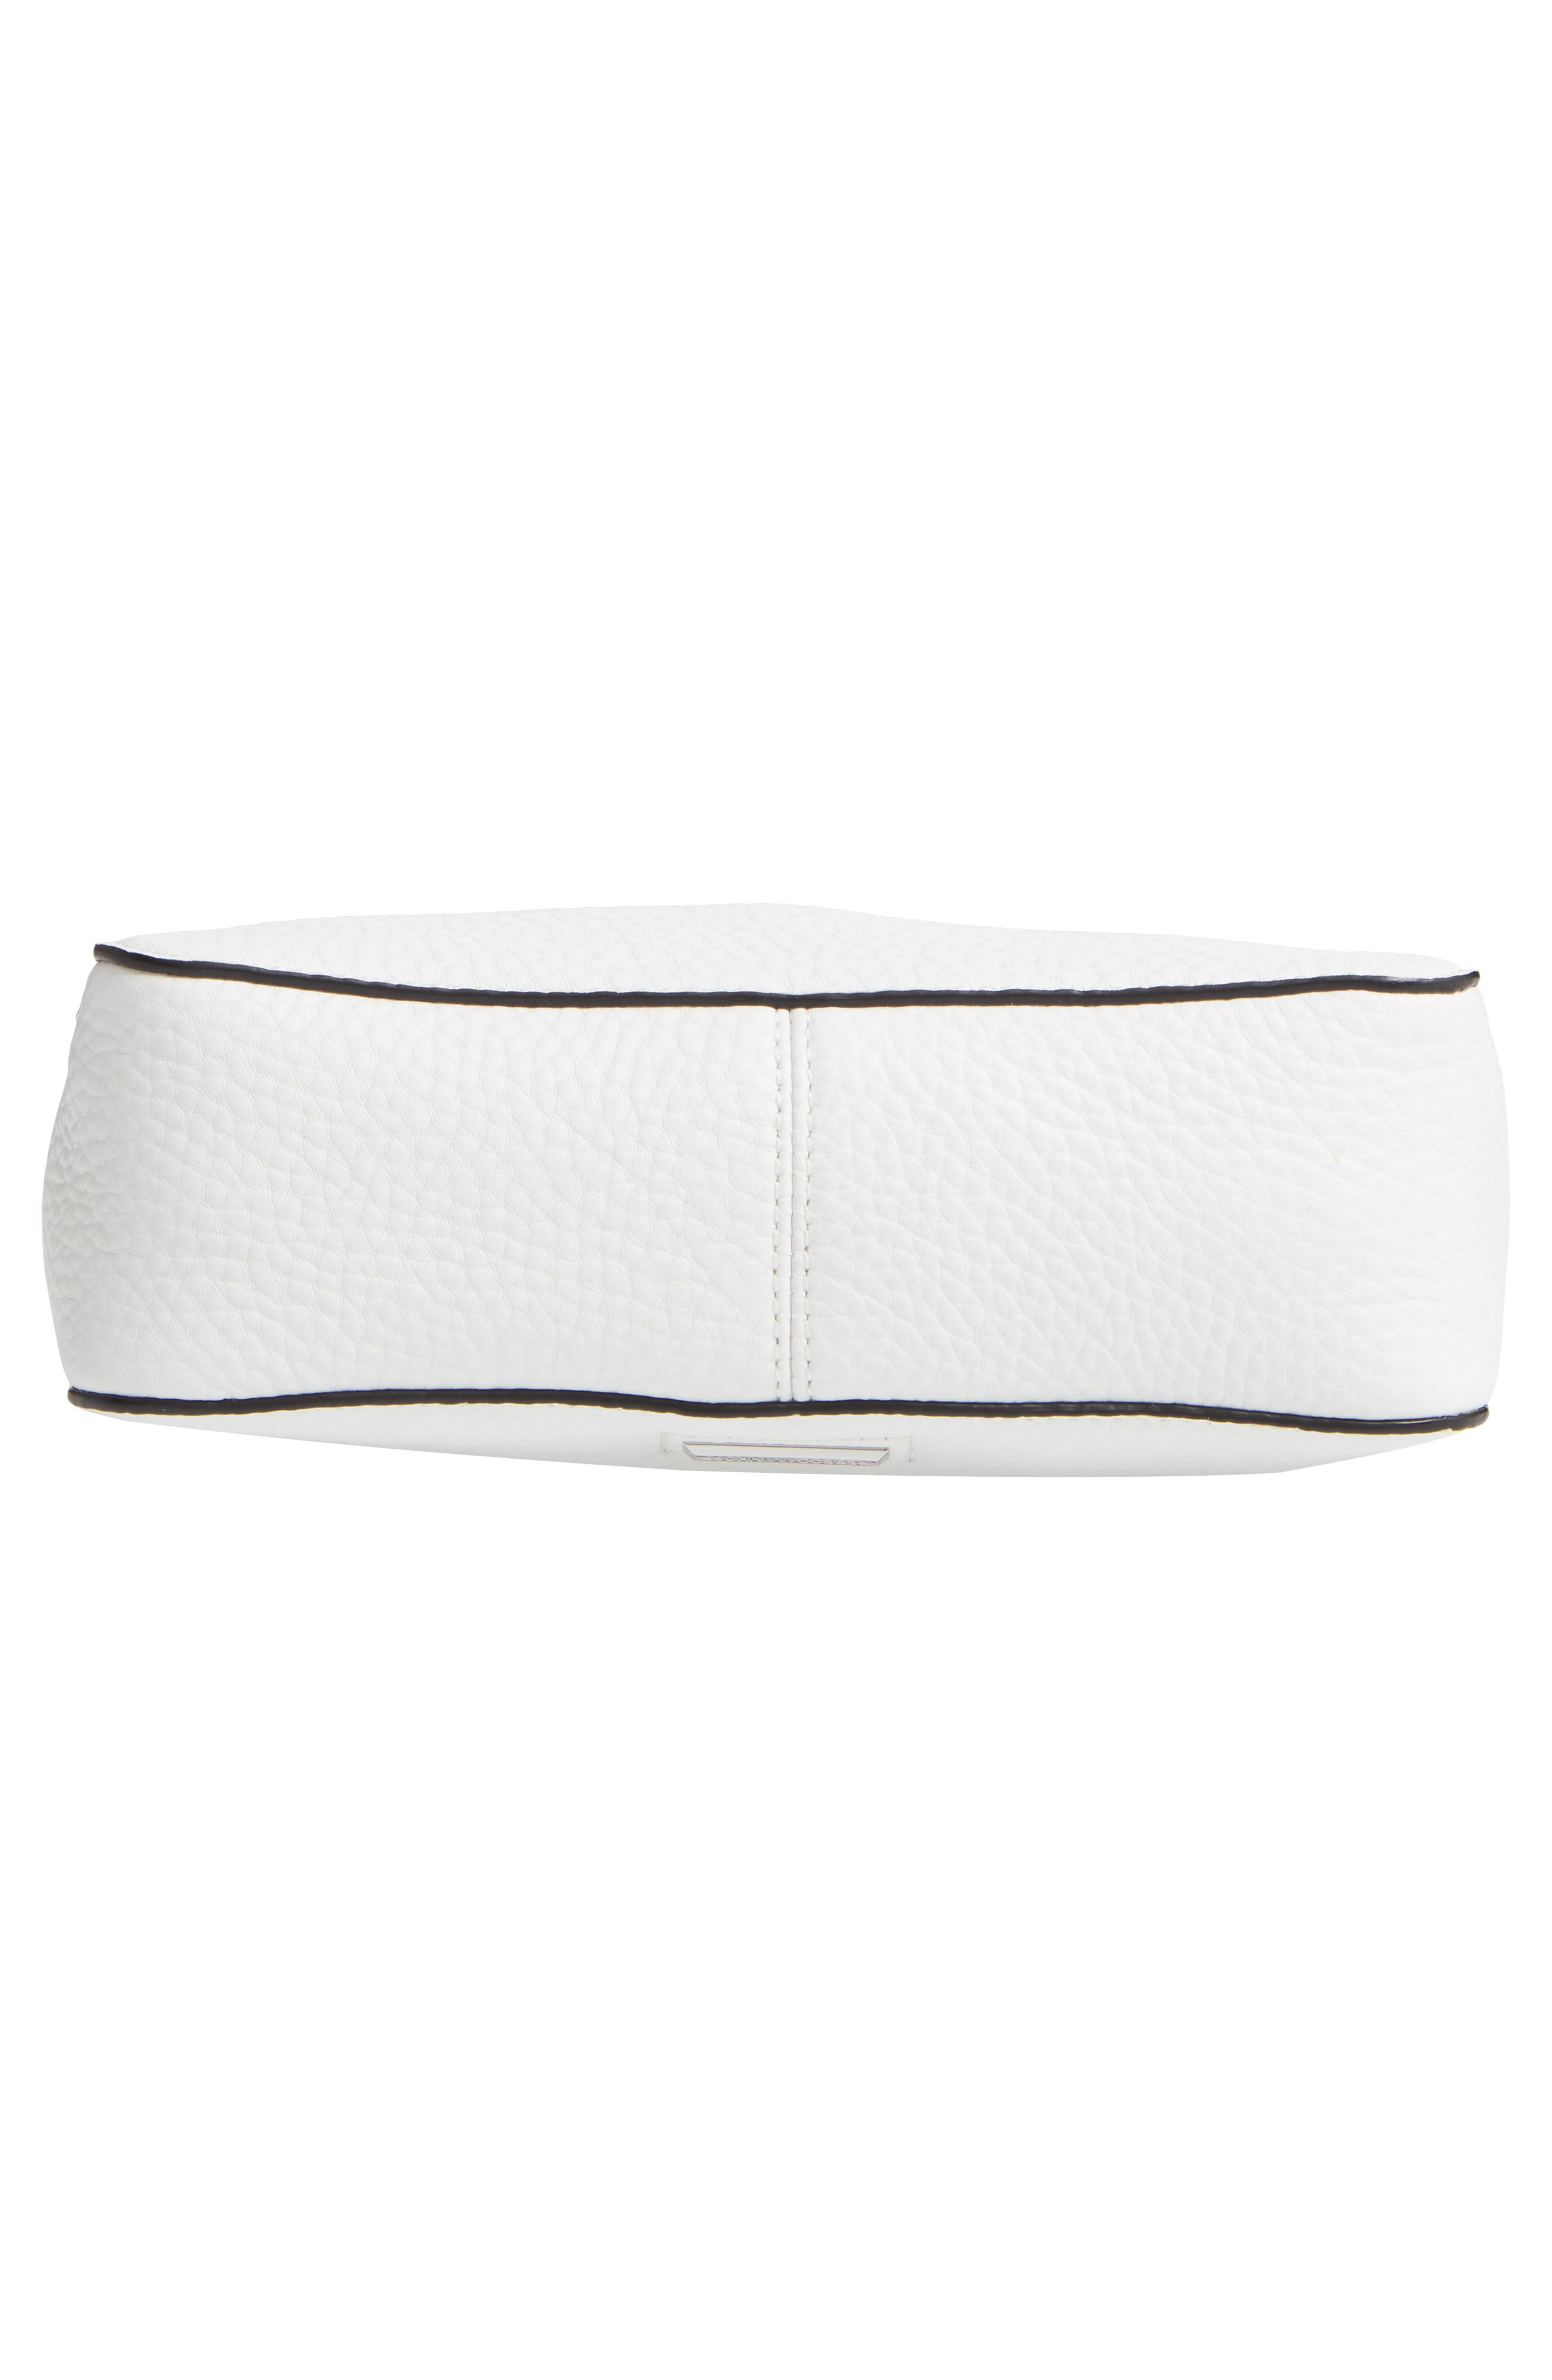 REBECCA MINKOFF, Small Studded Leather Feed Bag, Alternate thumbnail 8, color, OPTIC WHITE